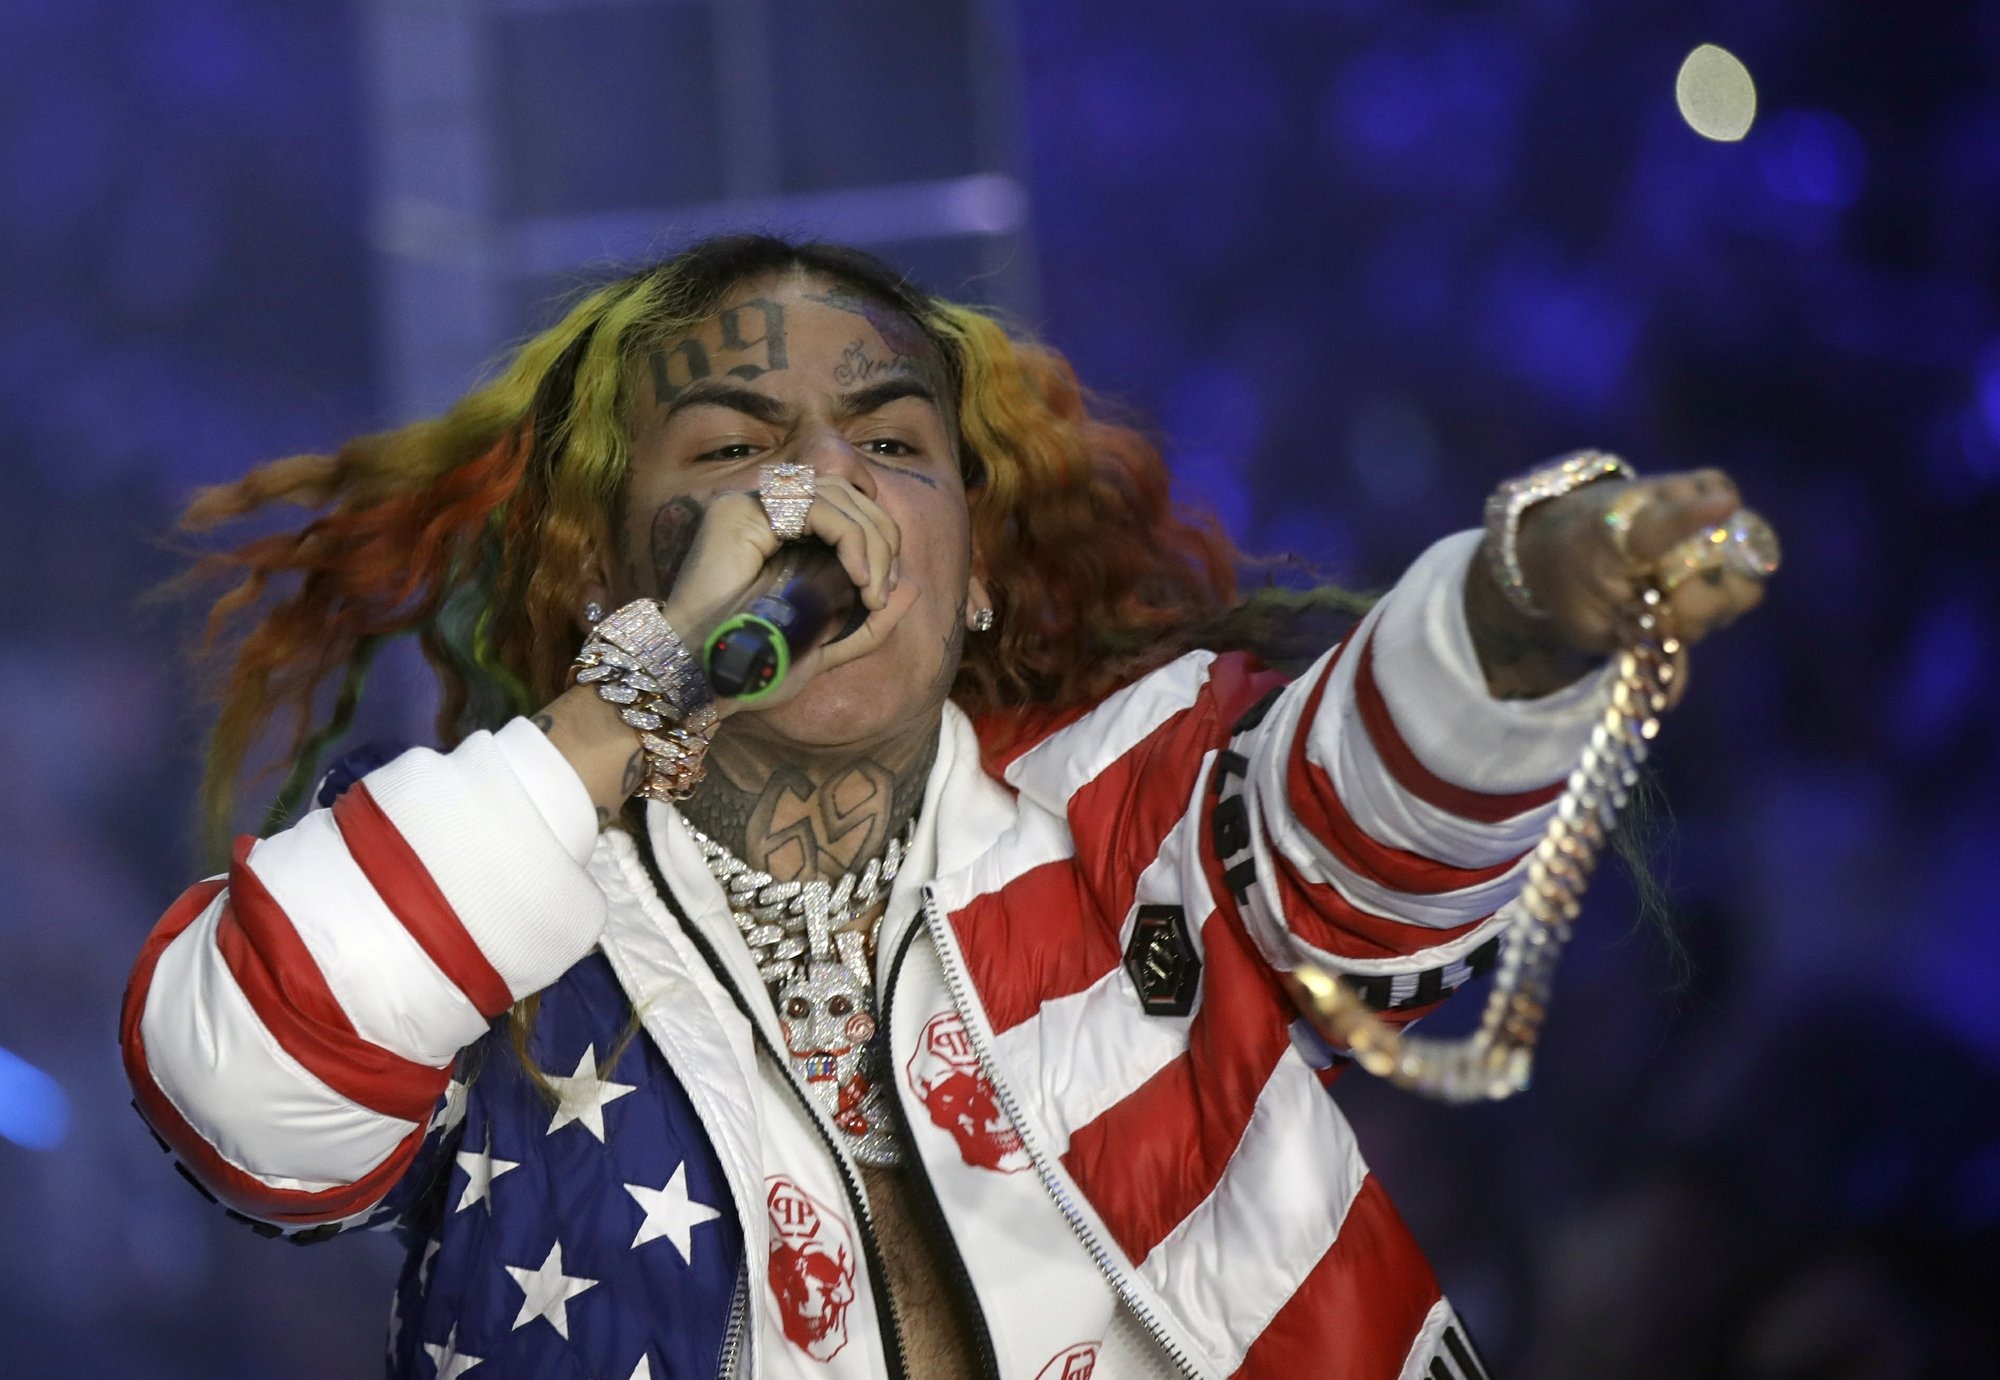 Brooklyn rapper 6ix9ine arrested on racketeering charges